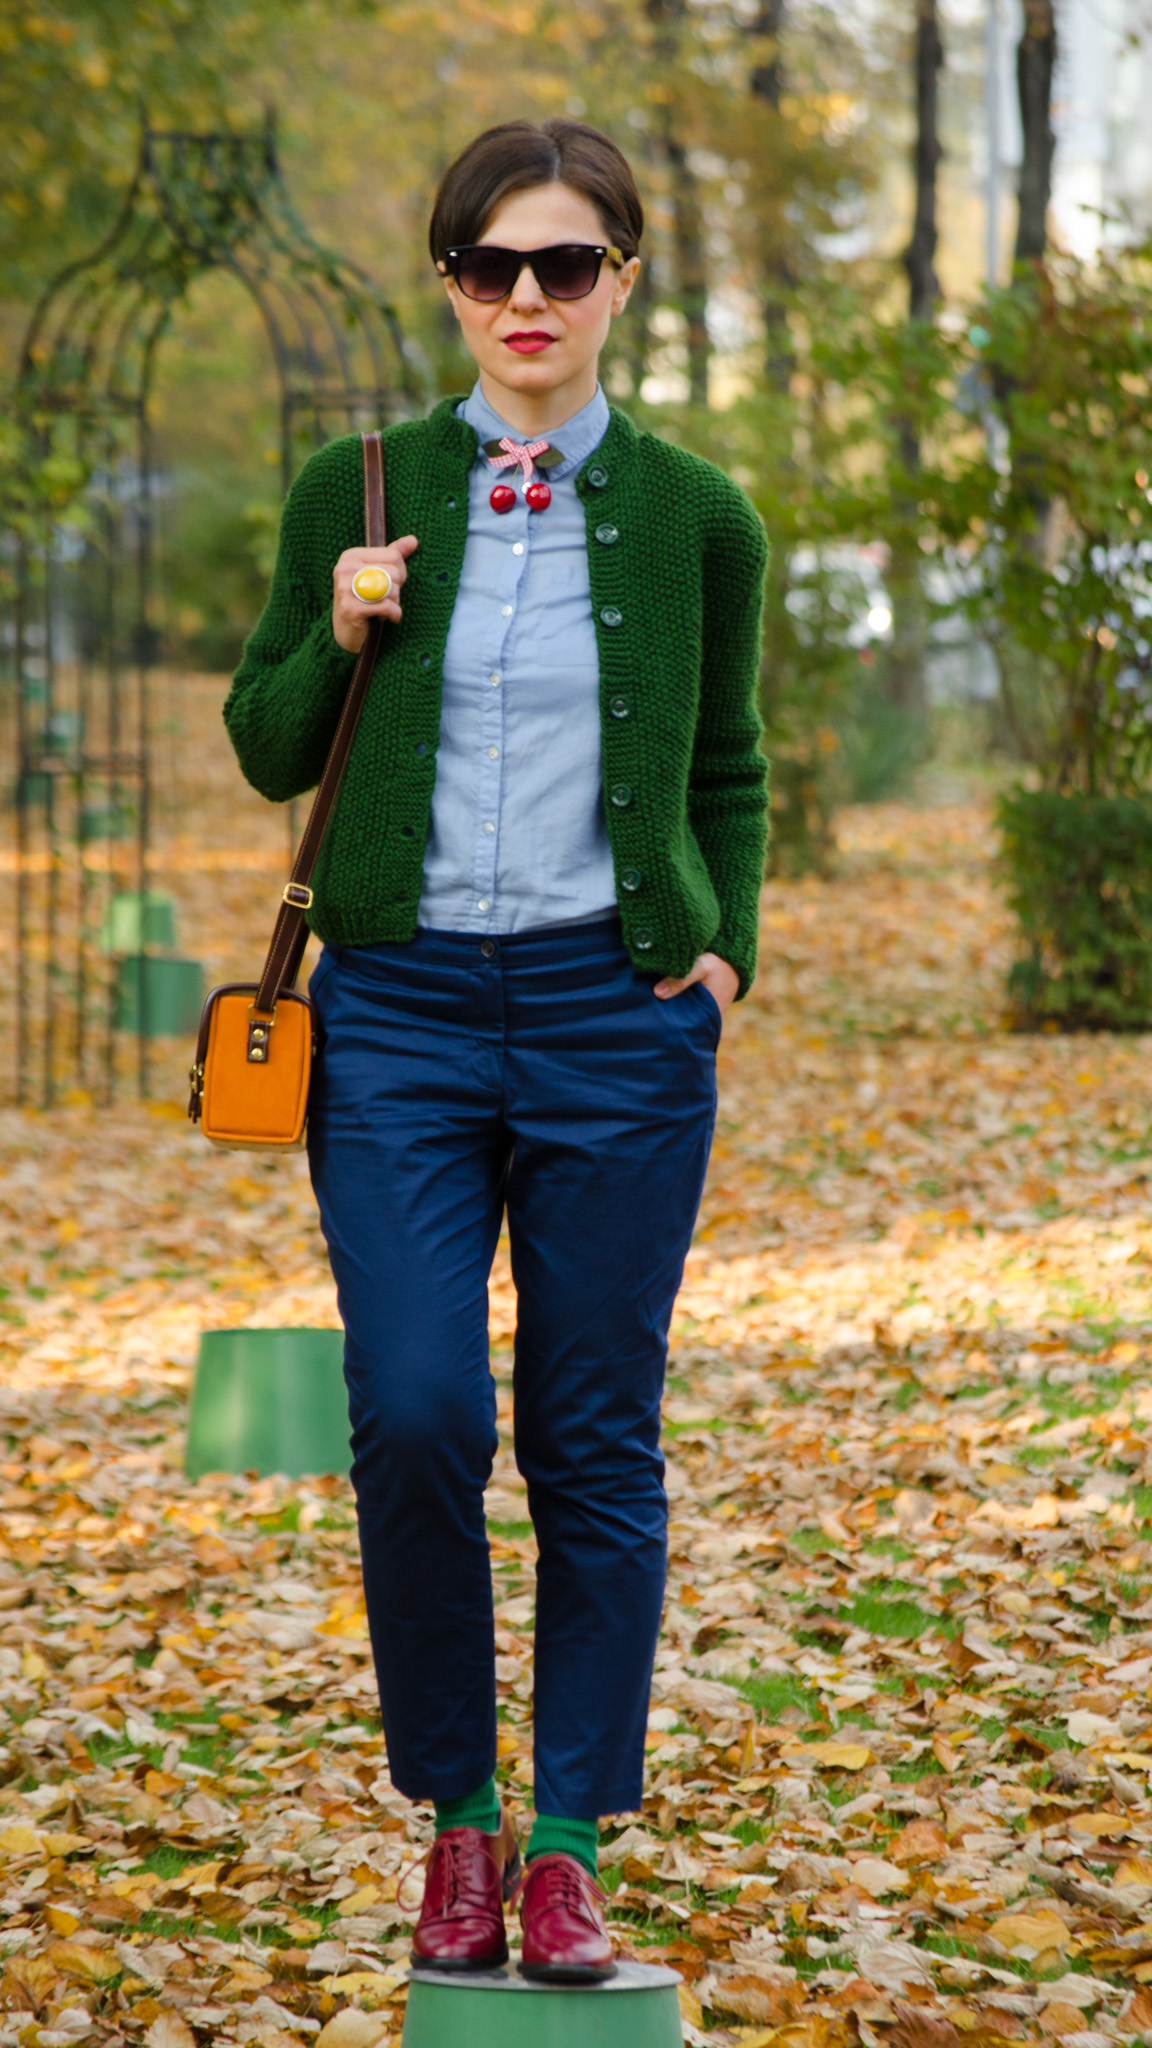 navy blue pants knitted green sweater shirt mustard square bag cherries h&m thrifted  burgundy man shoes oxford autumn scenery yellow leaves